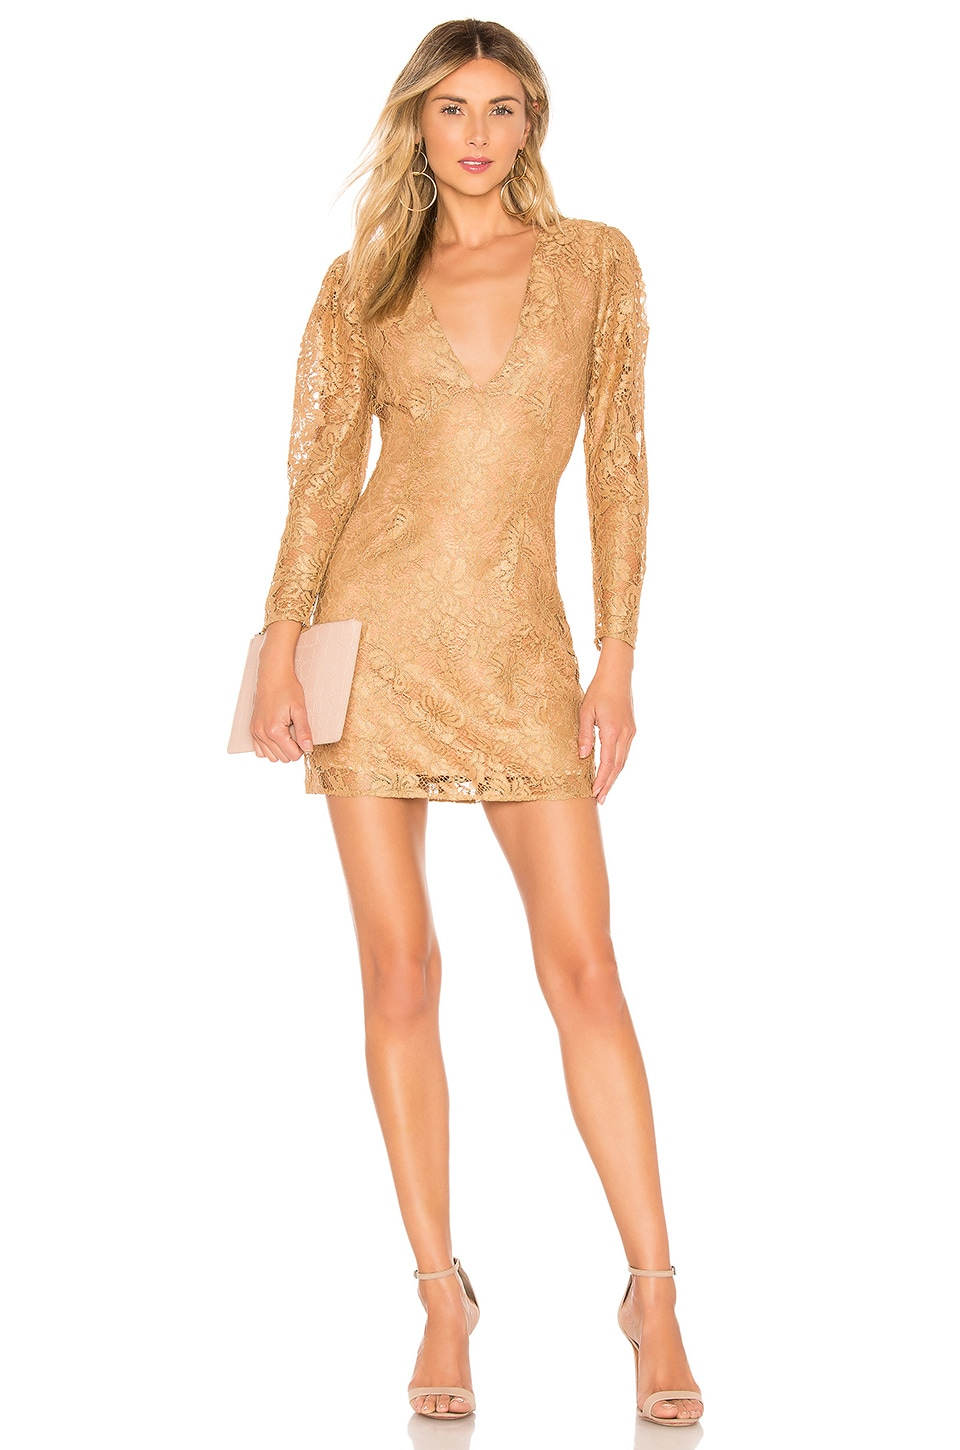 MAJORELLE Bettina Mini Dress in Golden Luxe